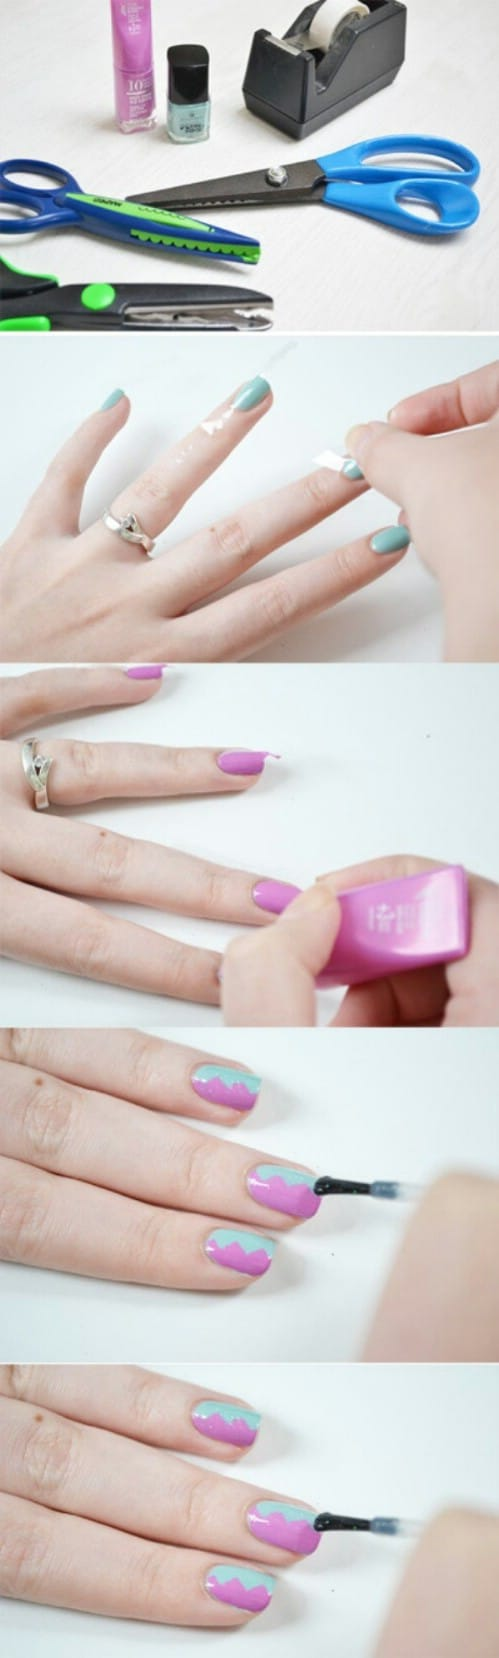 40 DIY Nail Art Hacks That Are Borderline Genius - DIY & Crafts